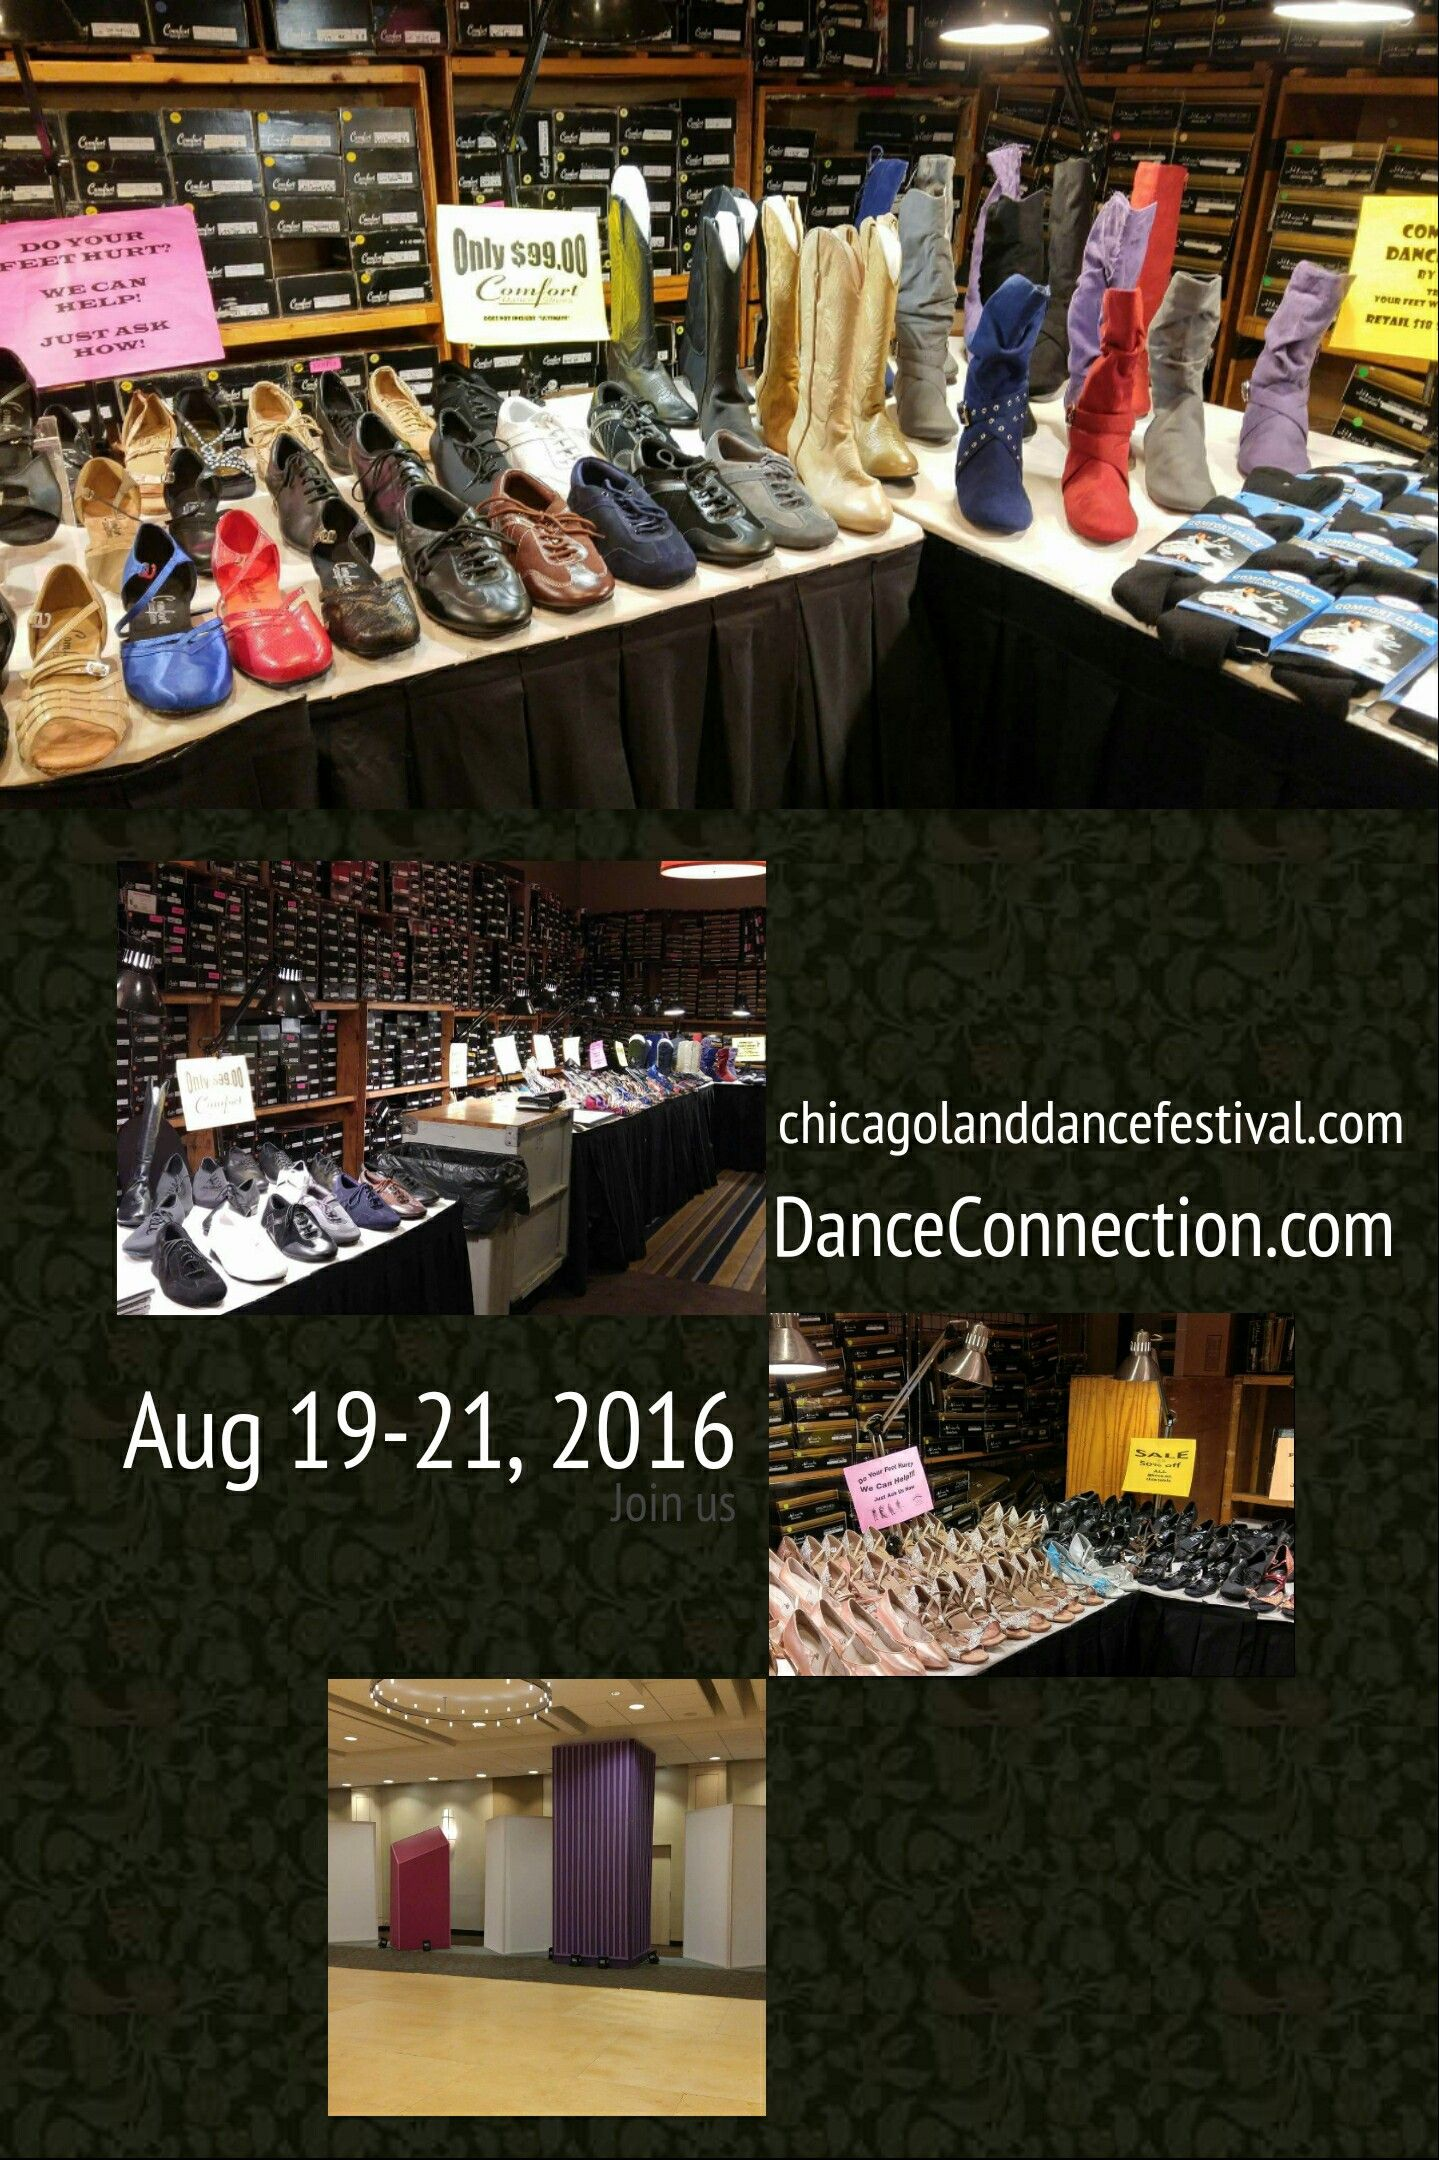 Chicago land dance event event dance